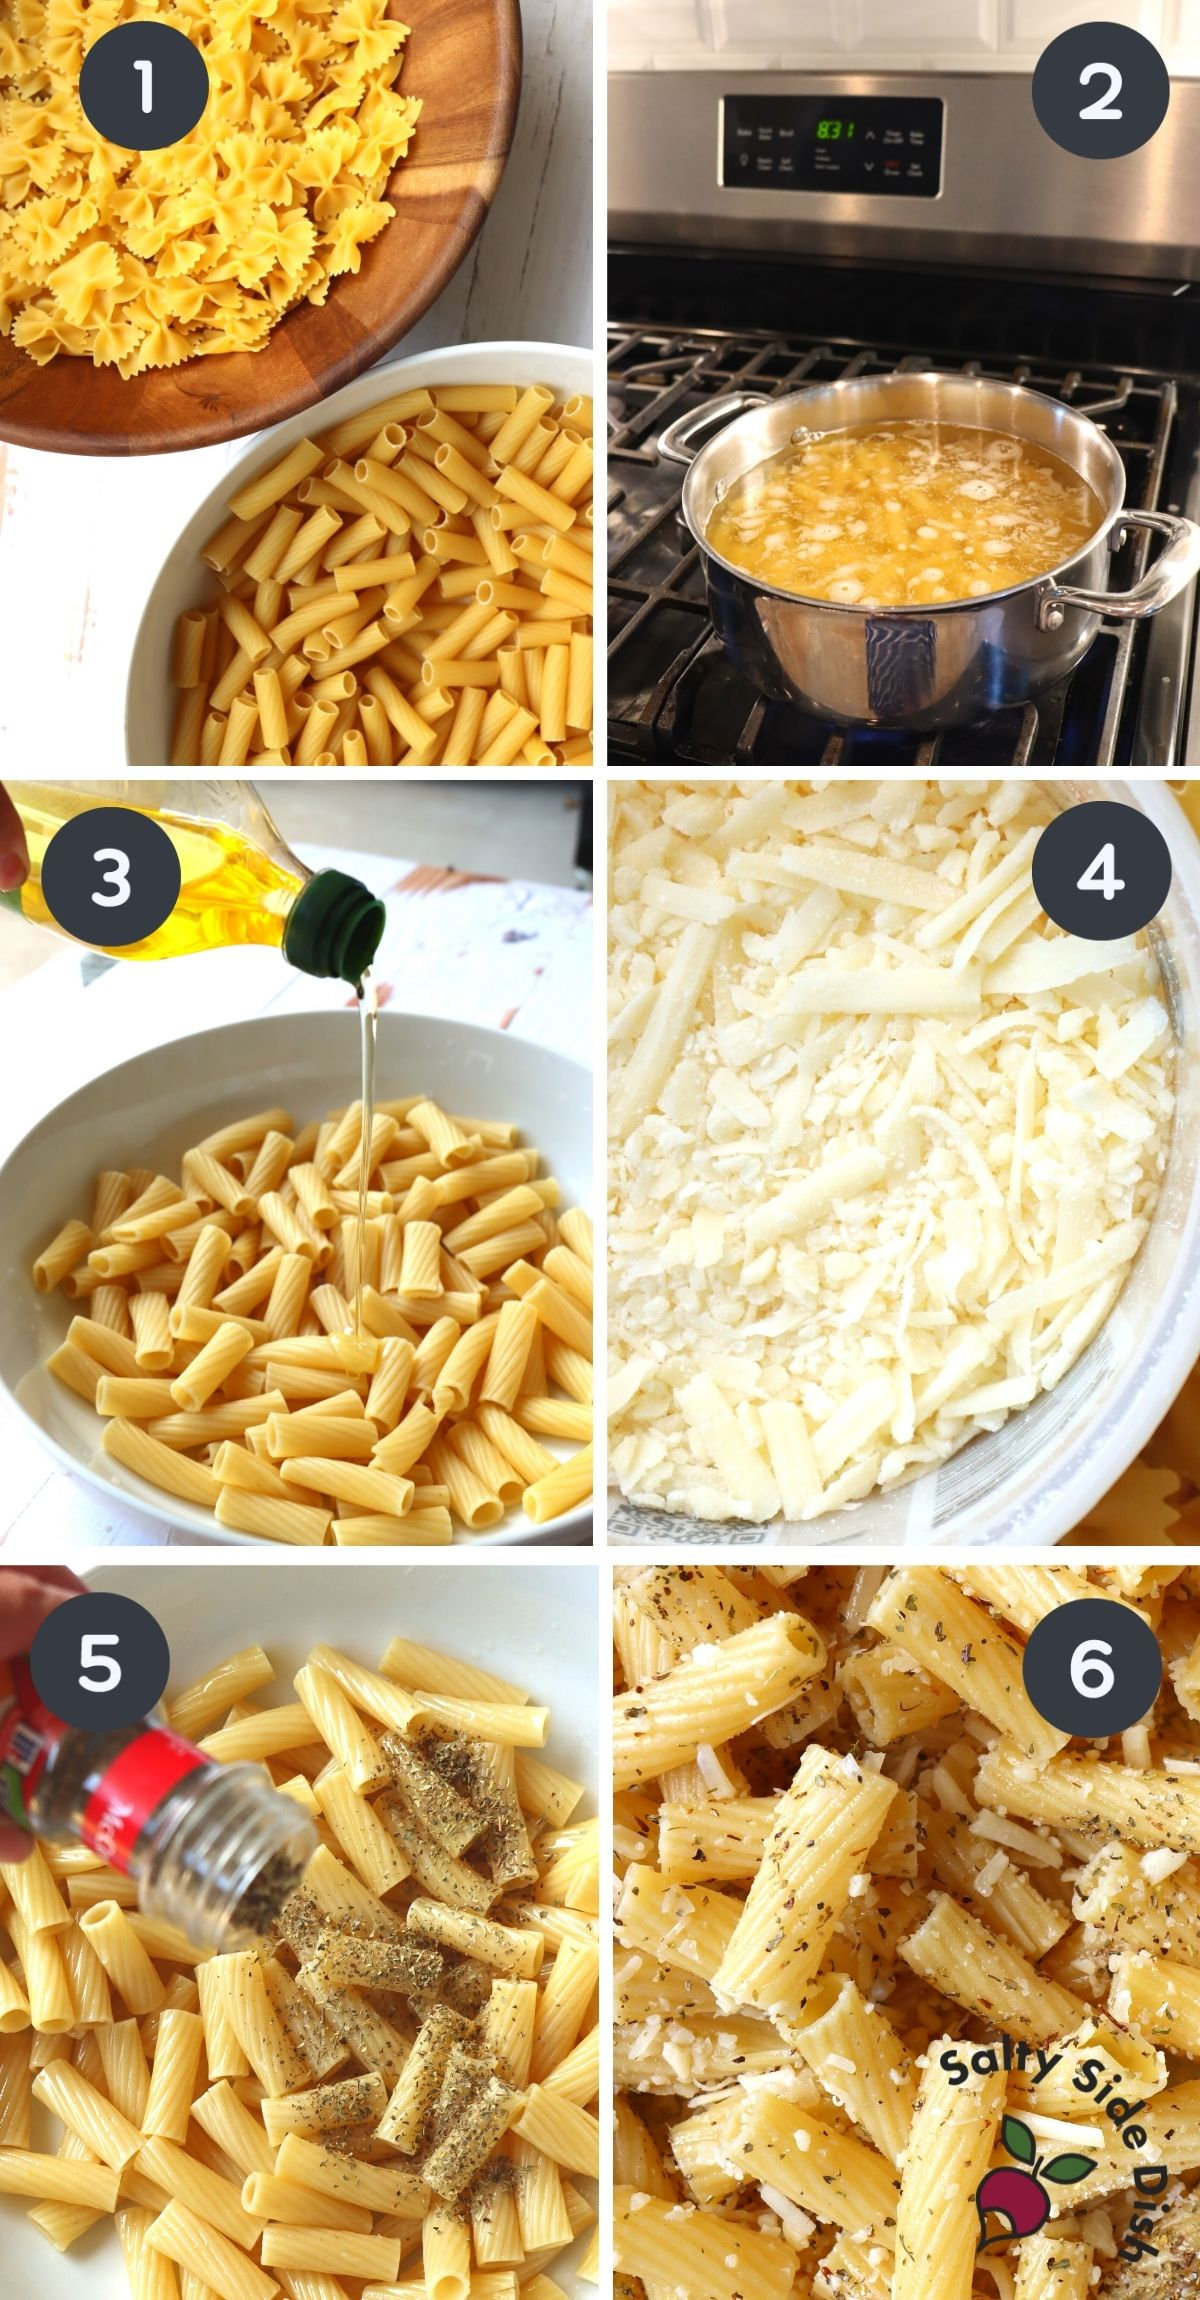 6 image collage of step by step instructions on how to make pasta chips.